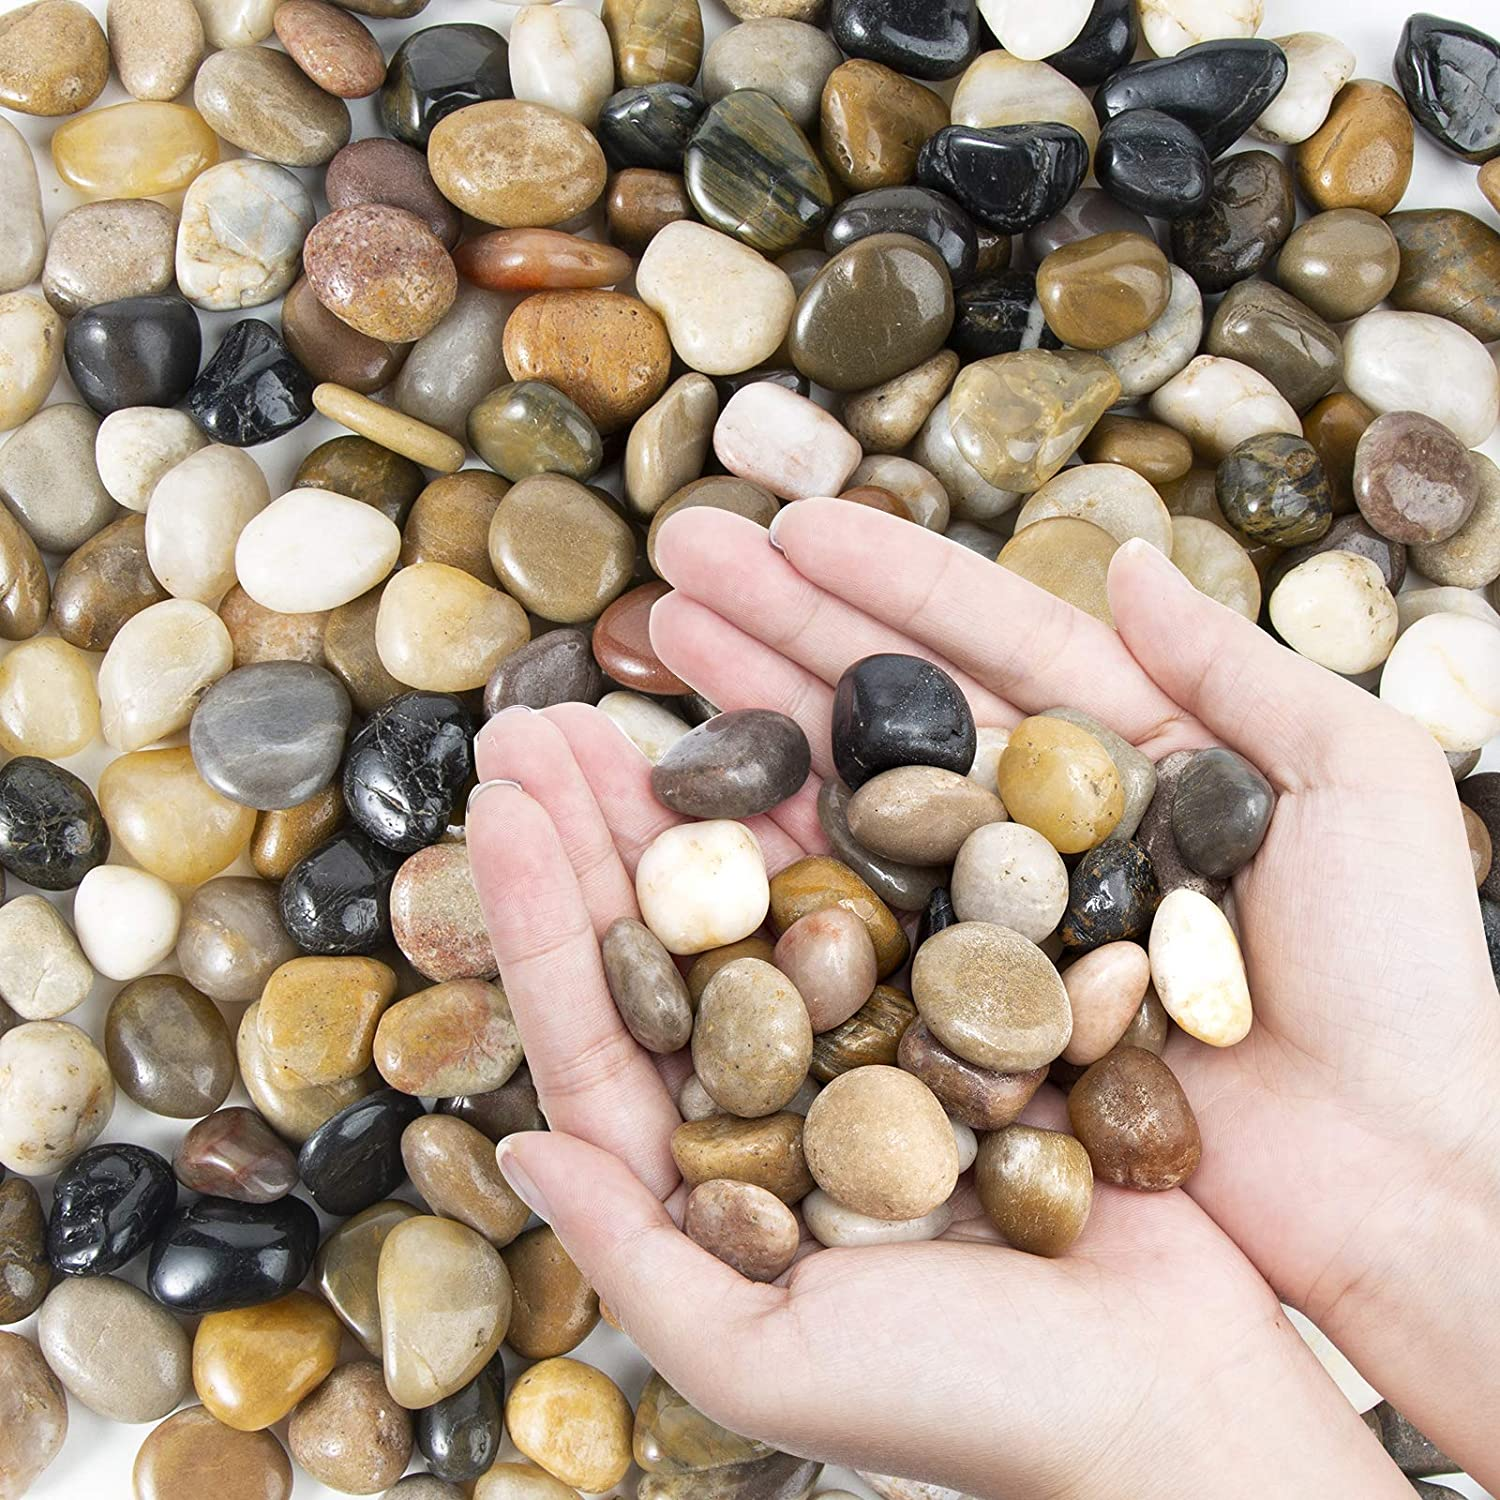 Oupeng Pebbles Polished Gravel Natural Polished Mixed Color Stones Small Decorative River Rock Stones 2 Pounds 32 Oz Garden Outdoor